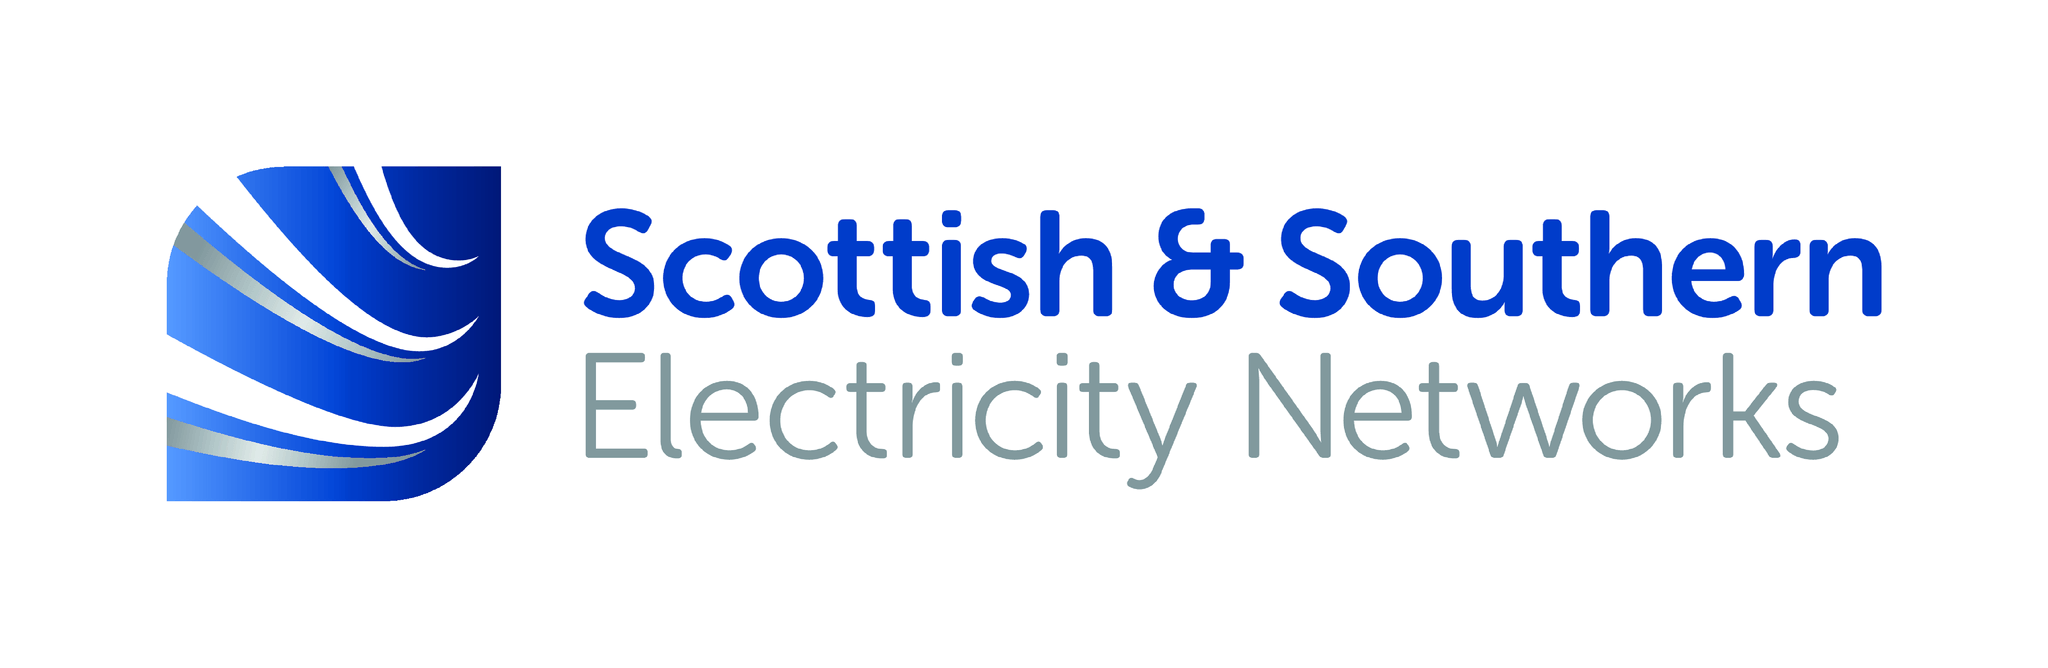 Scottish & Southern Electricity Networks (SSEN)